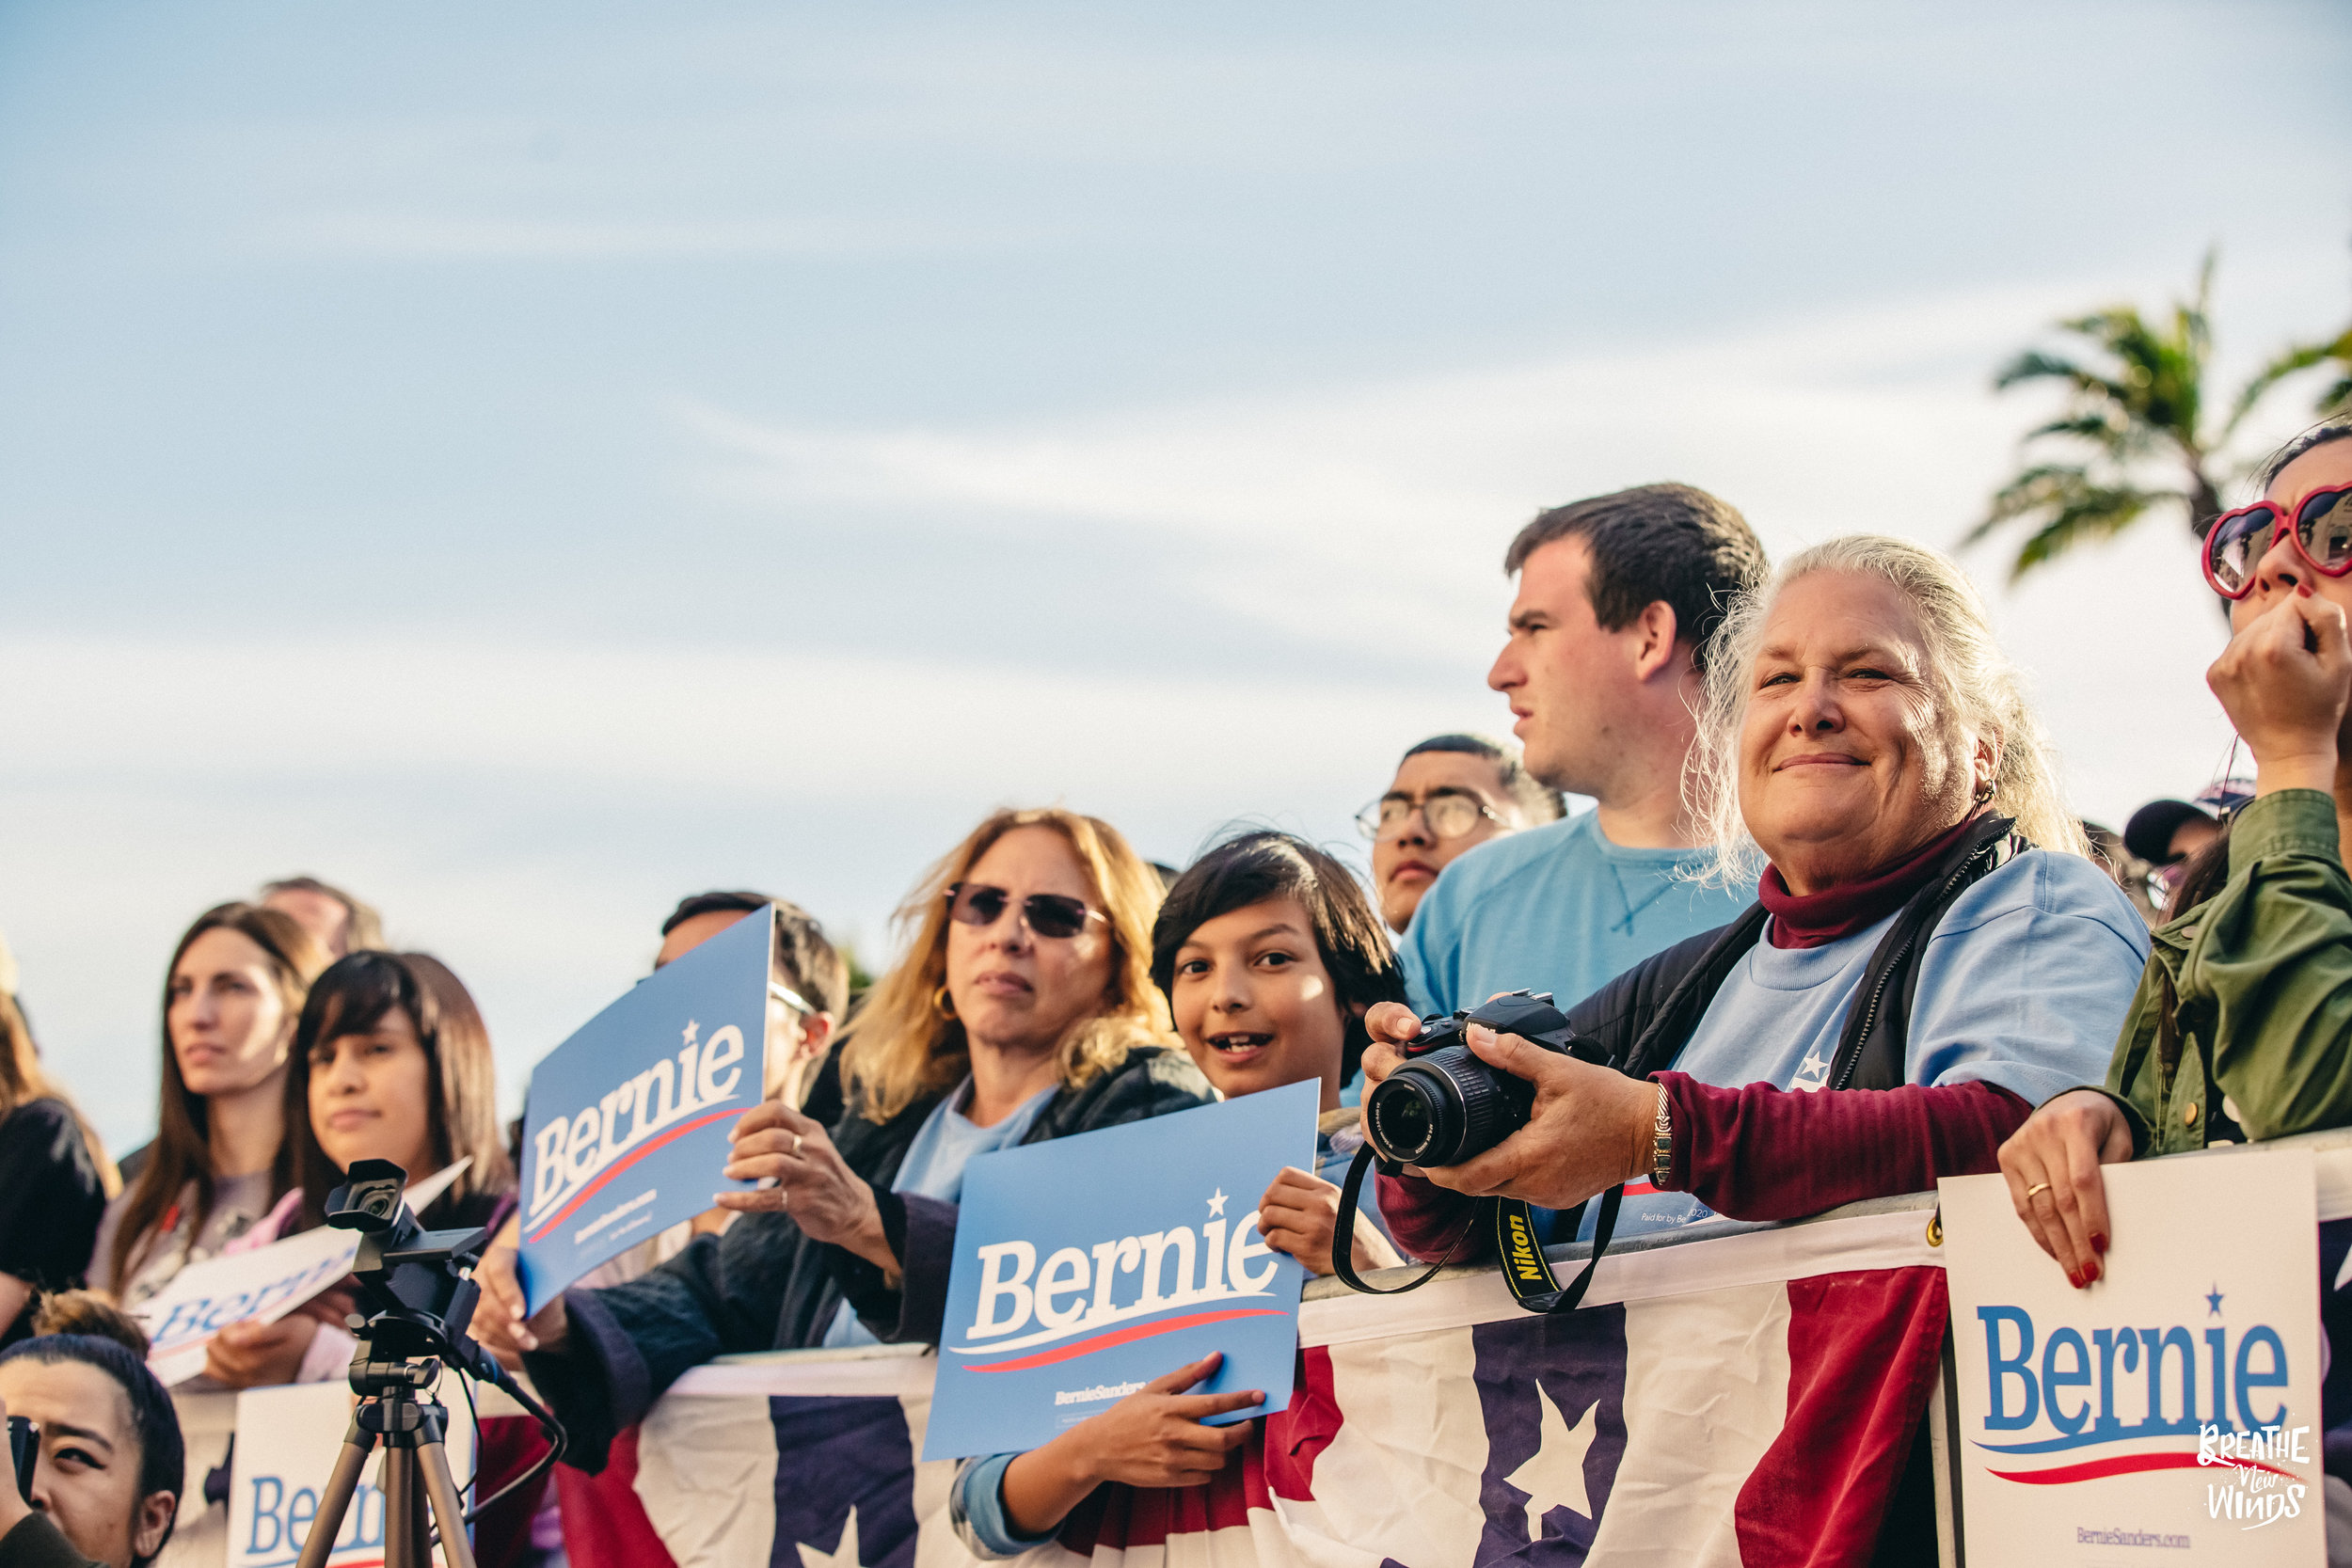 BernieInSD_22March2019-Crowd (69 of 94).jpg